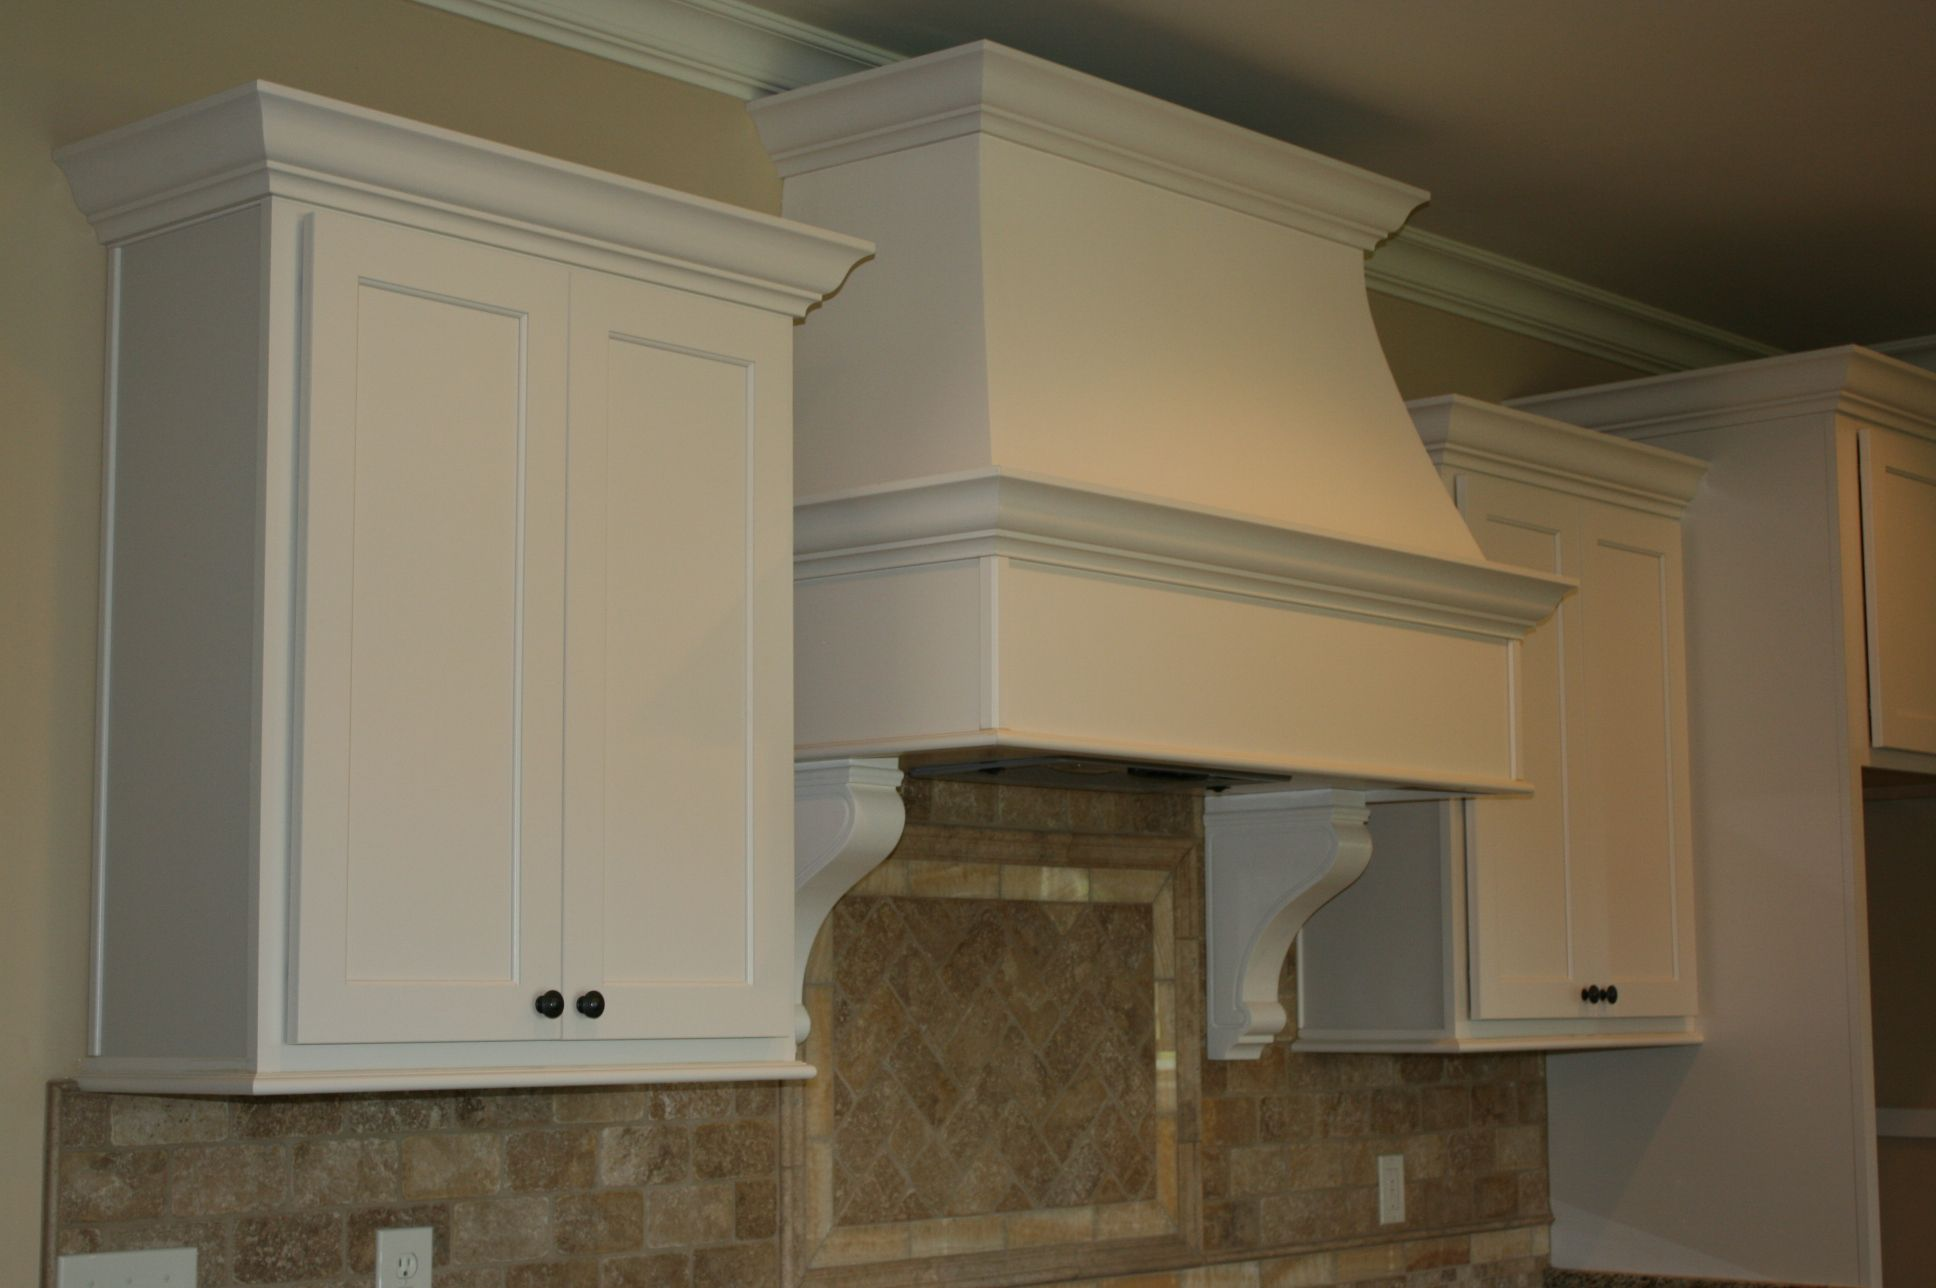 b5b6e661b78649b27270585b987f90df Painted Cabinet Kitchen Remodel Ideas on painted paneling remodel, kitchen designs remodel, kitchen island remodel, traditional kitchen remodel,